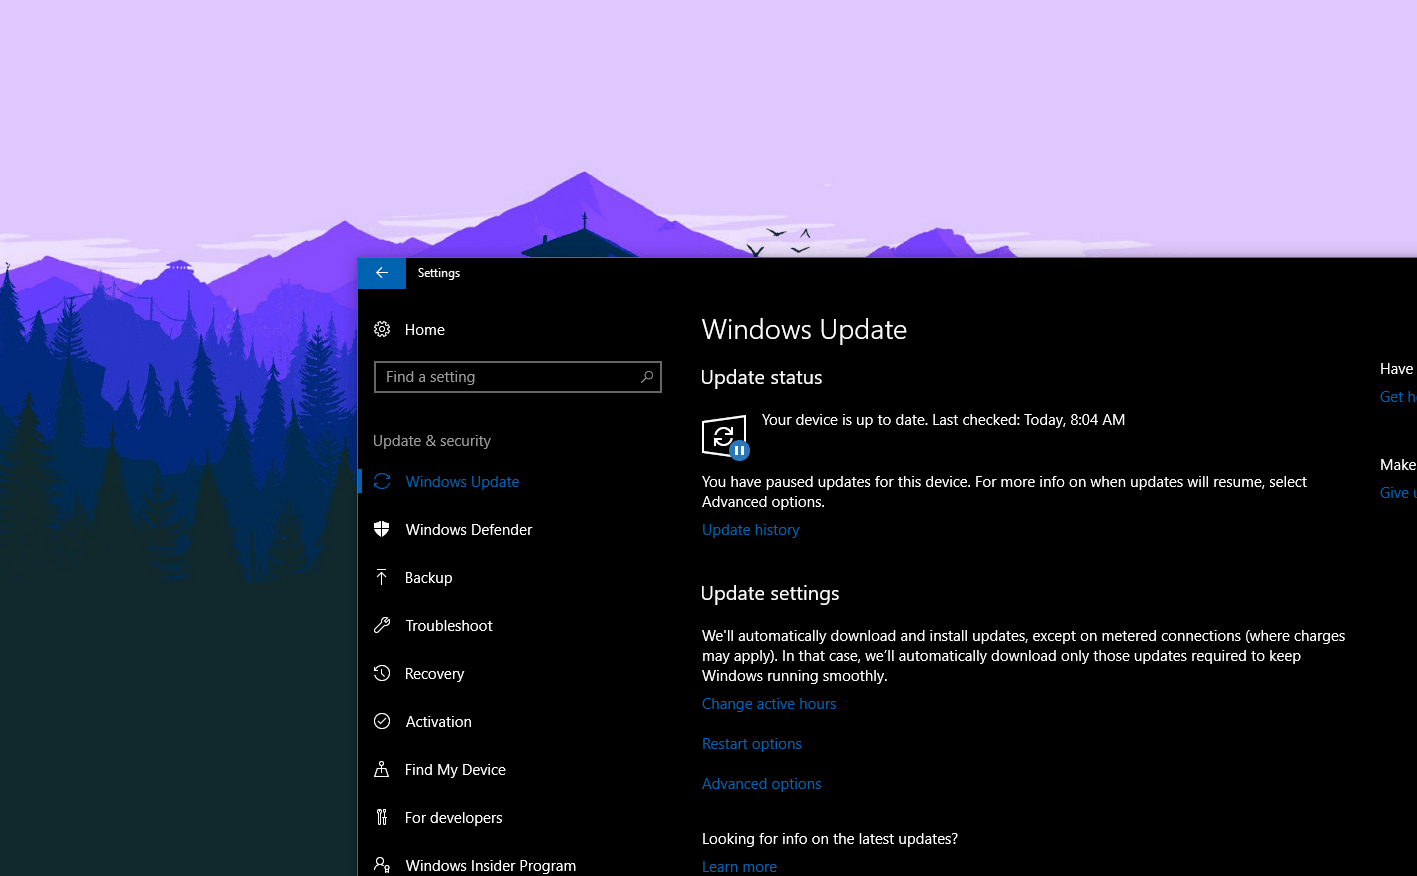 Microsoft's latest cumulative updates failing to install and causing random reboots for some users 1